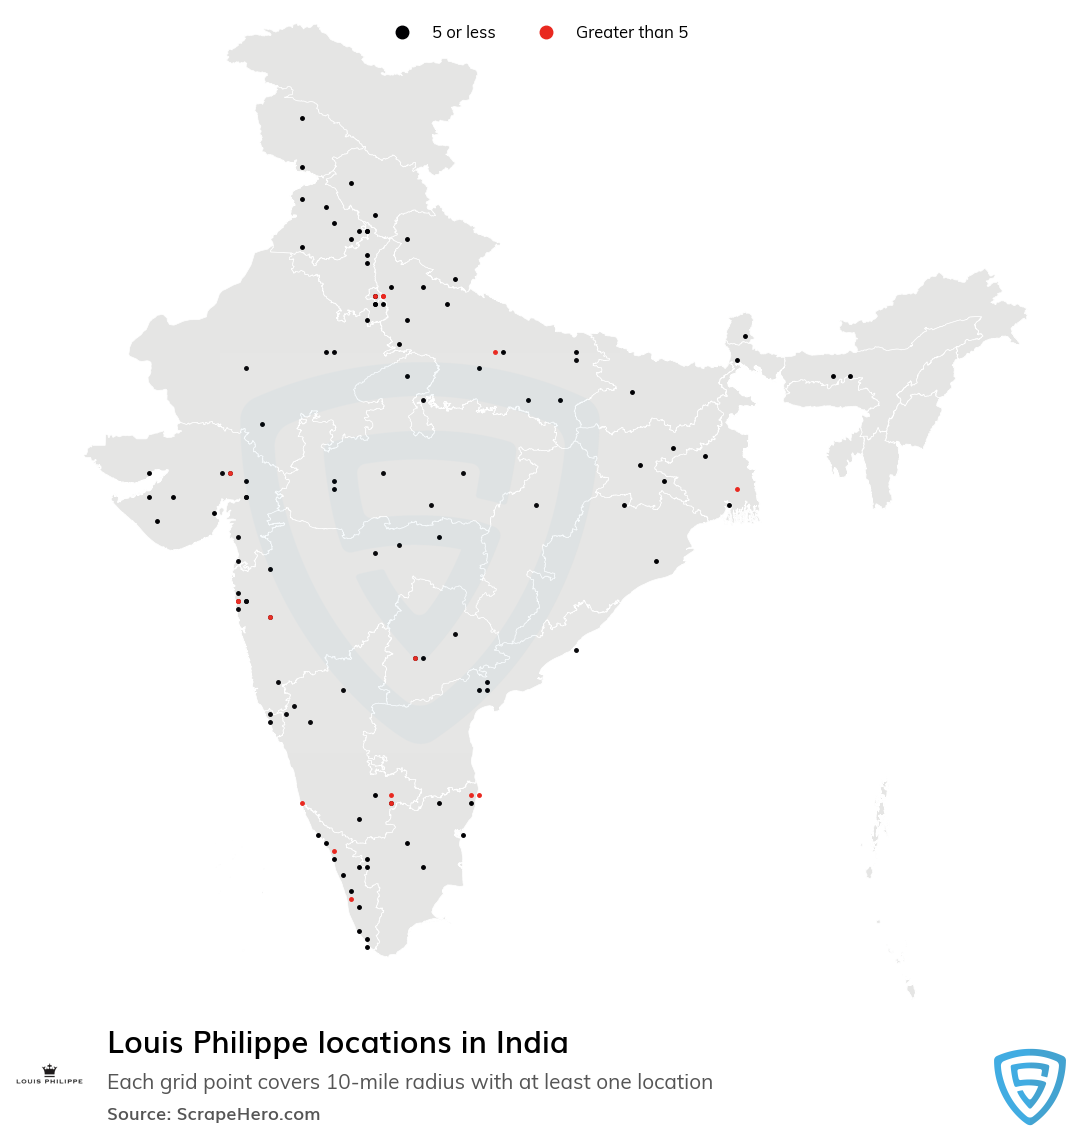 Louis Philippe store locations